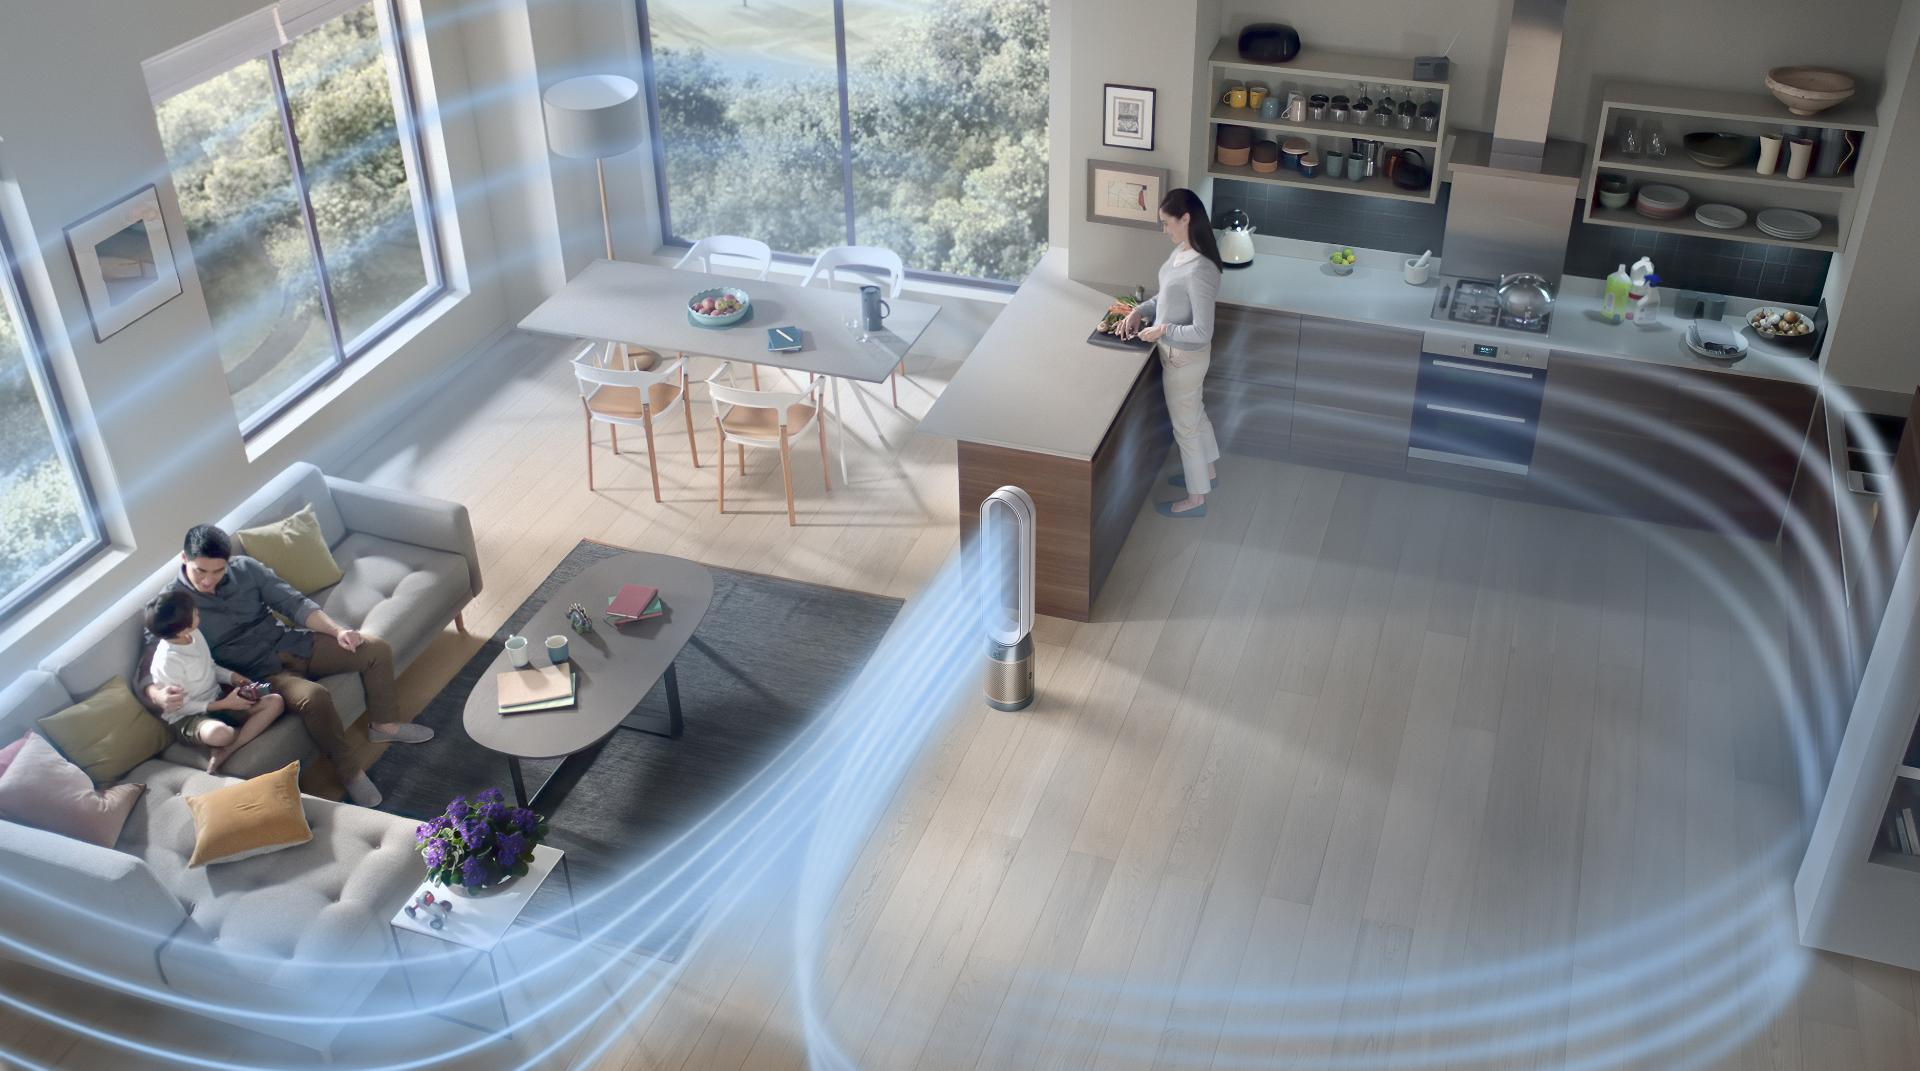 Dyson purifier cool formaldehyde purifying a large living space